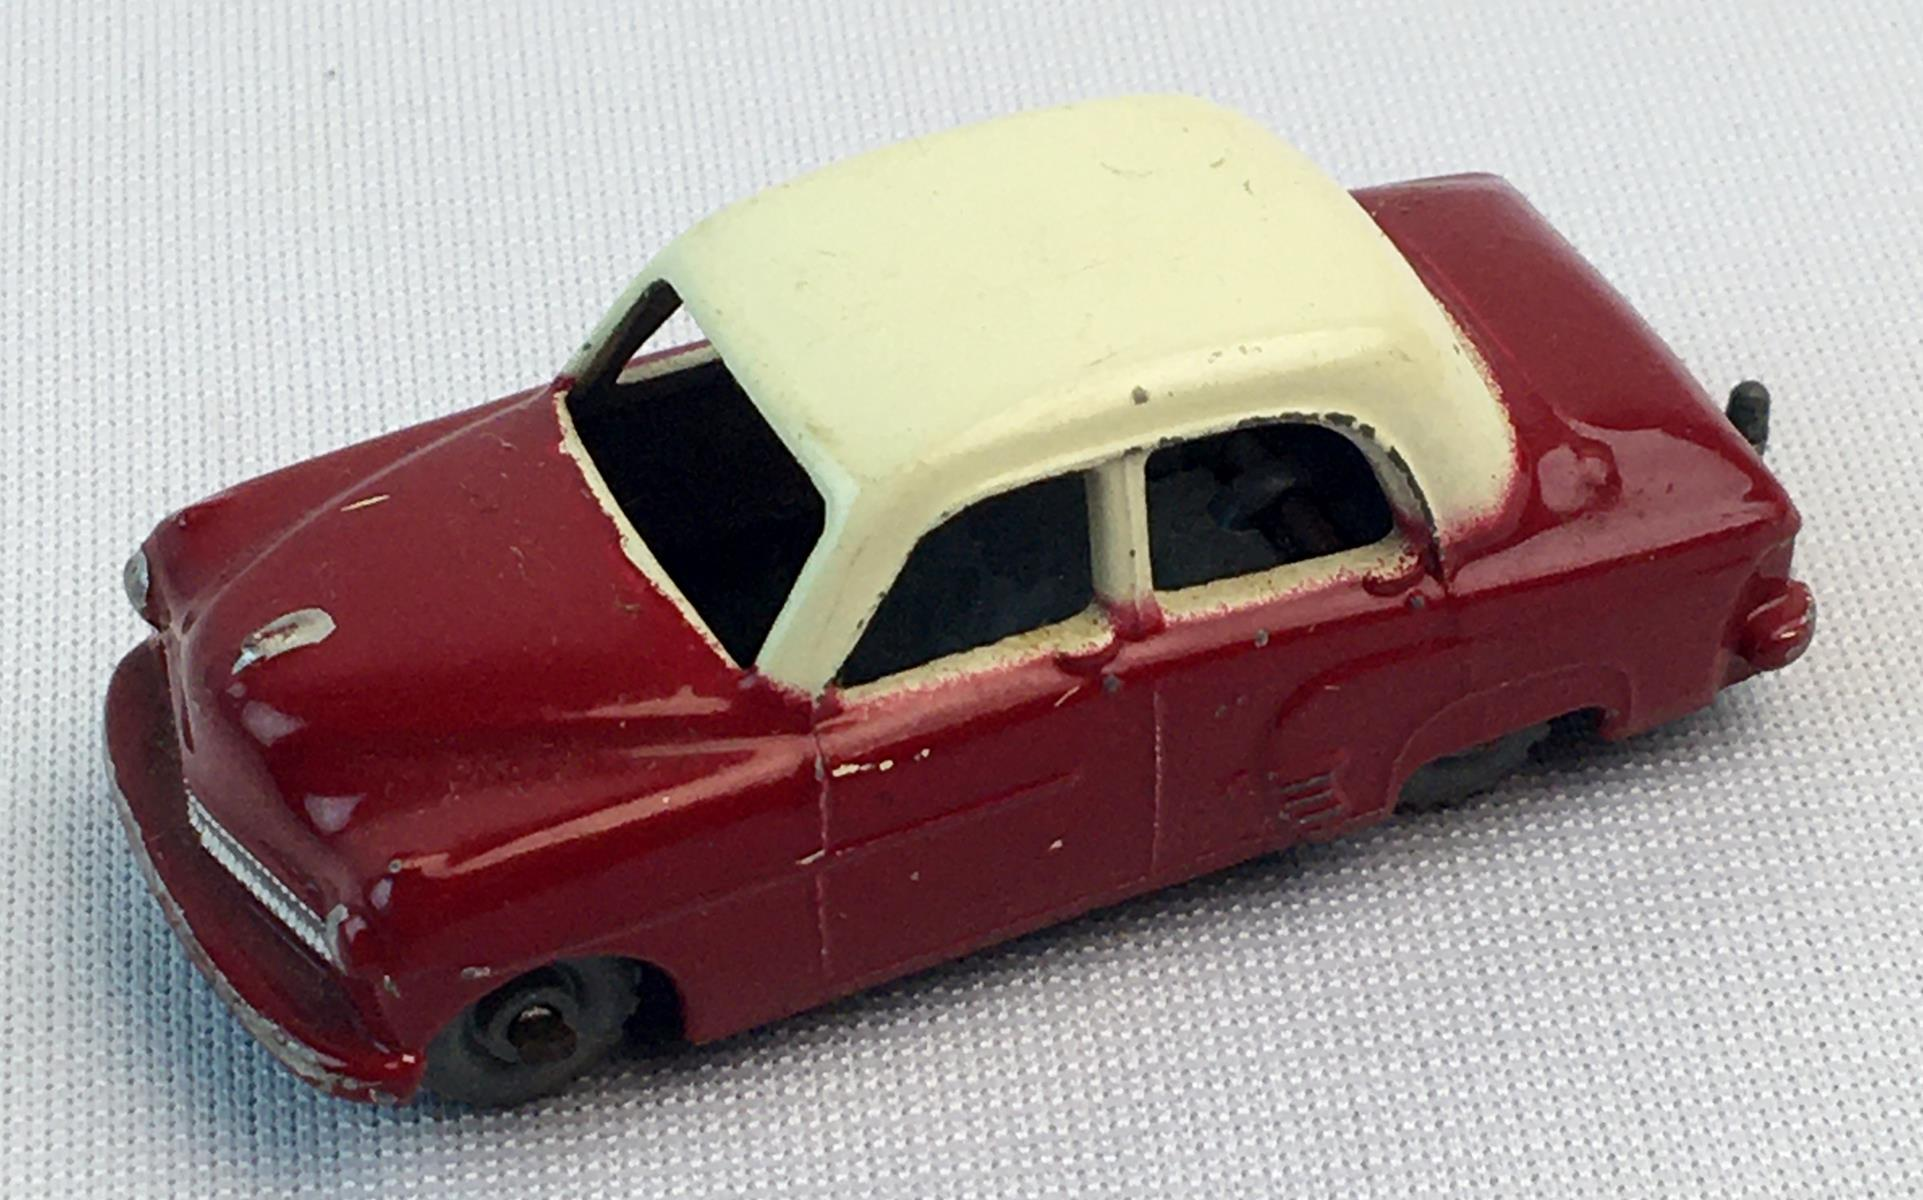 Vintage 1956 Lesney Matchbox No.22A Red and White Vauxhall Cresta w/ Gray Wheels